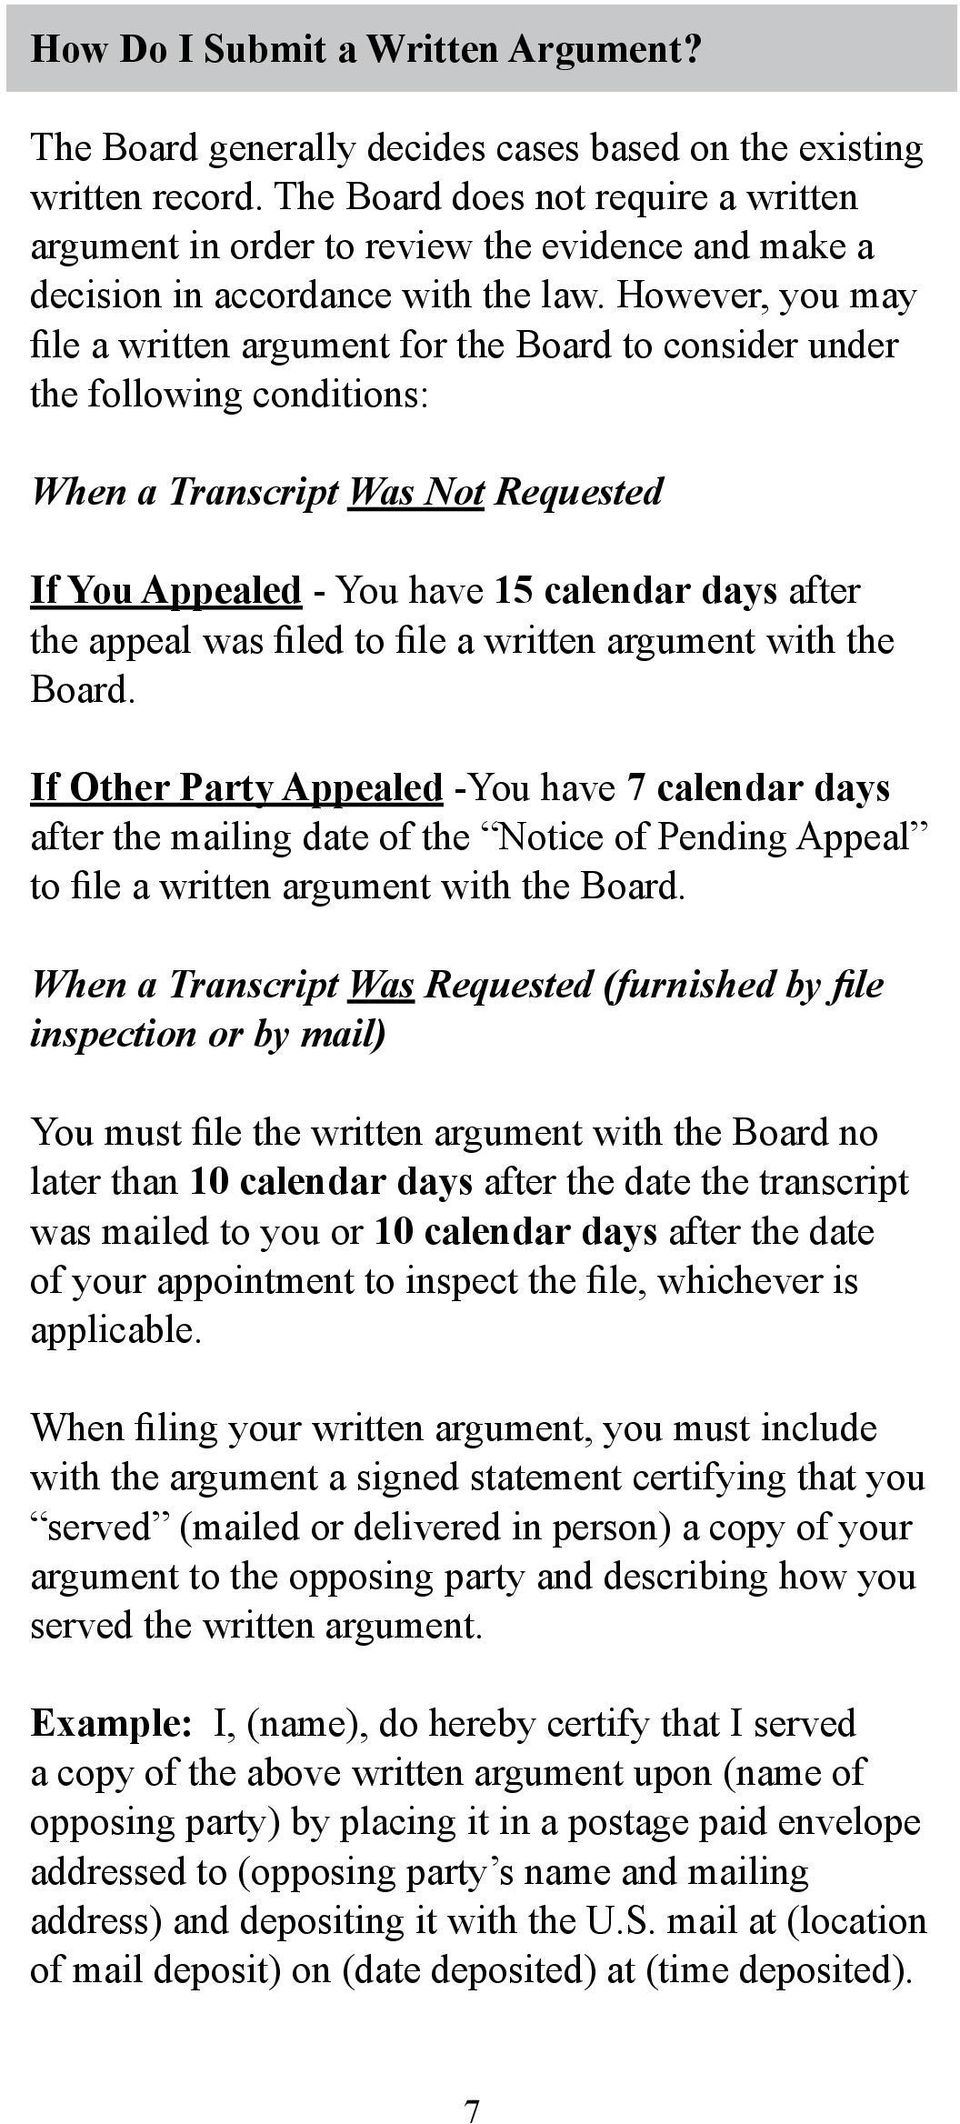 However, you may file a written argument for the Board to consider under the following conditions: When a Transcript Was Not Requested If You Appealed - You have 15 calendar days after the appeal was